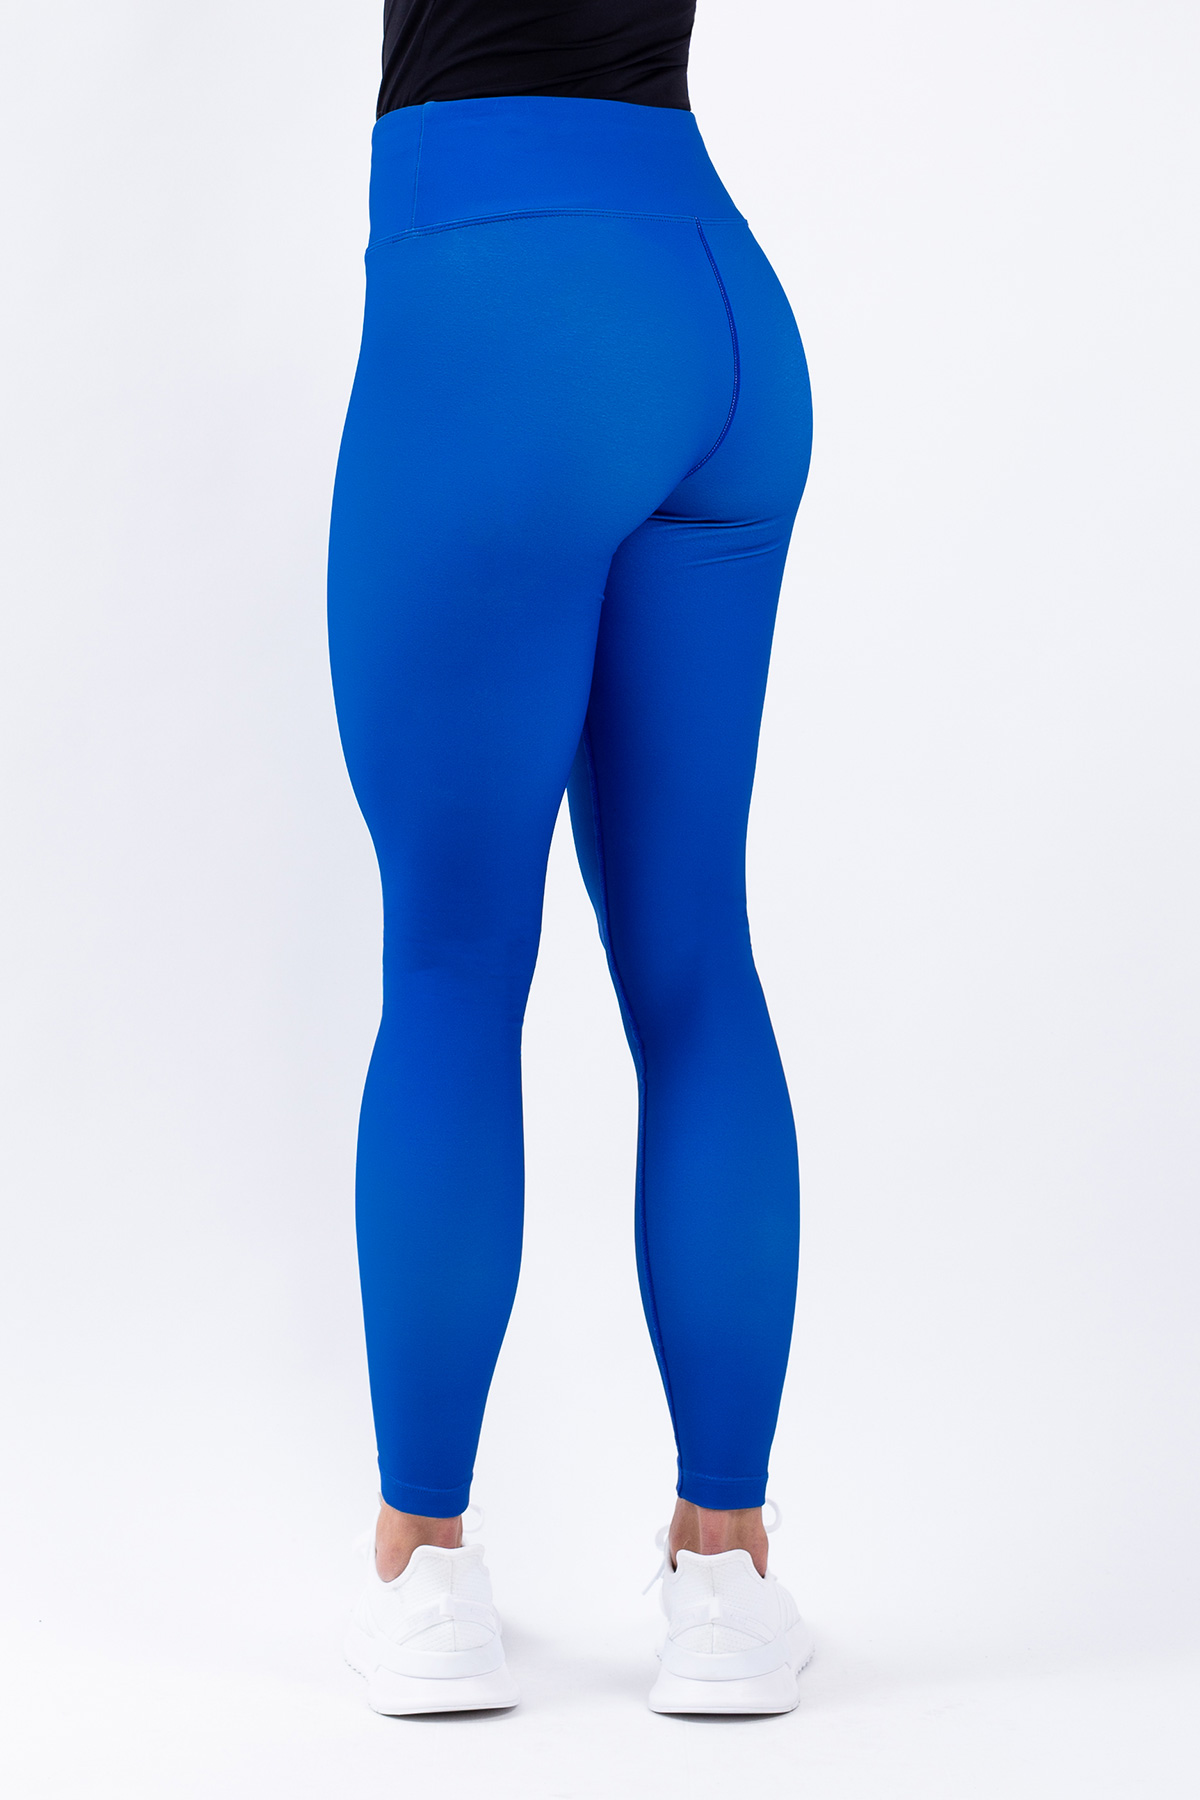 Underställ | Venture Tights - Nautic Blue